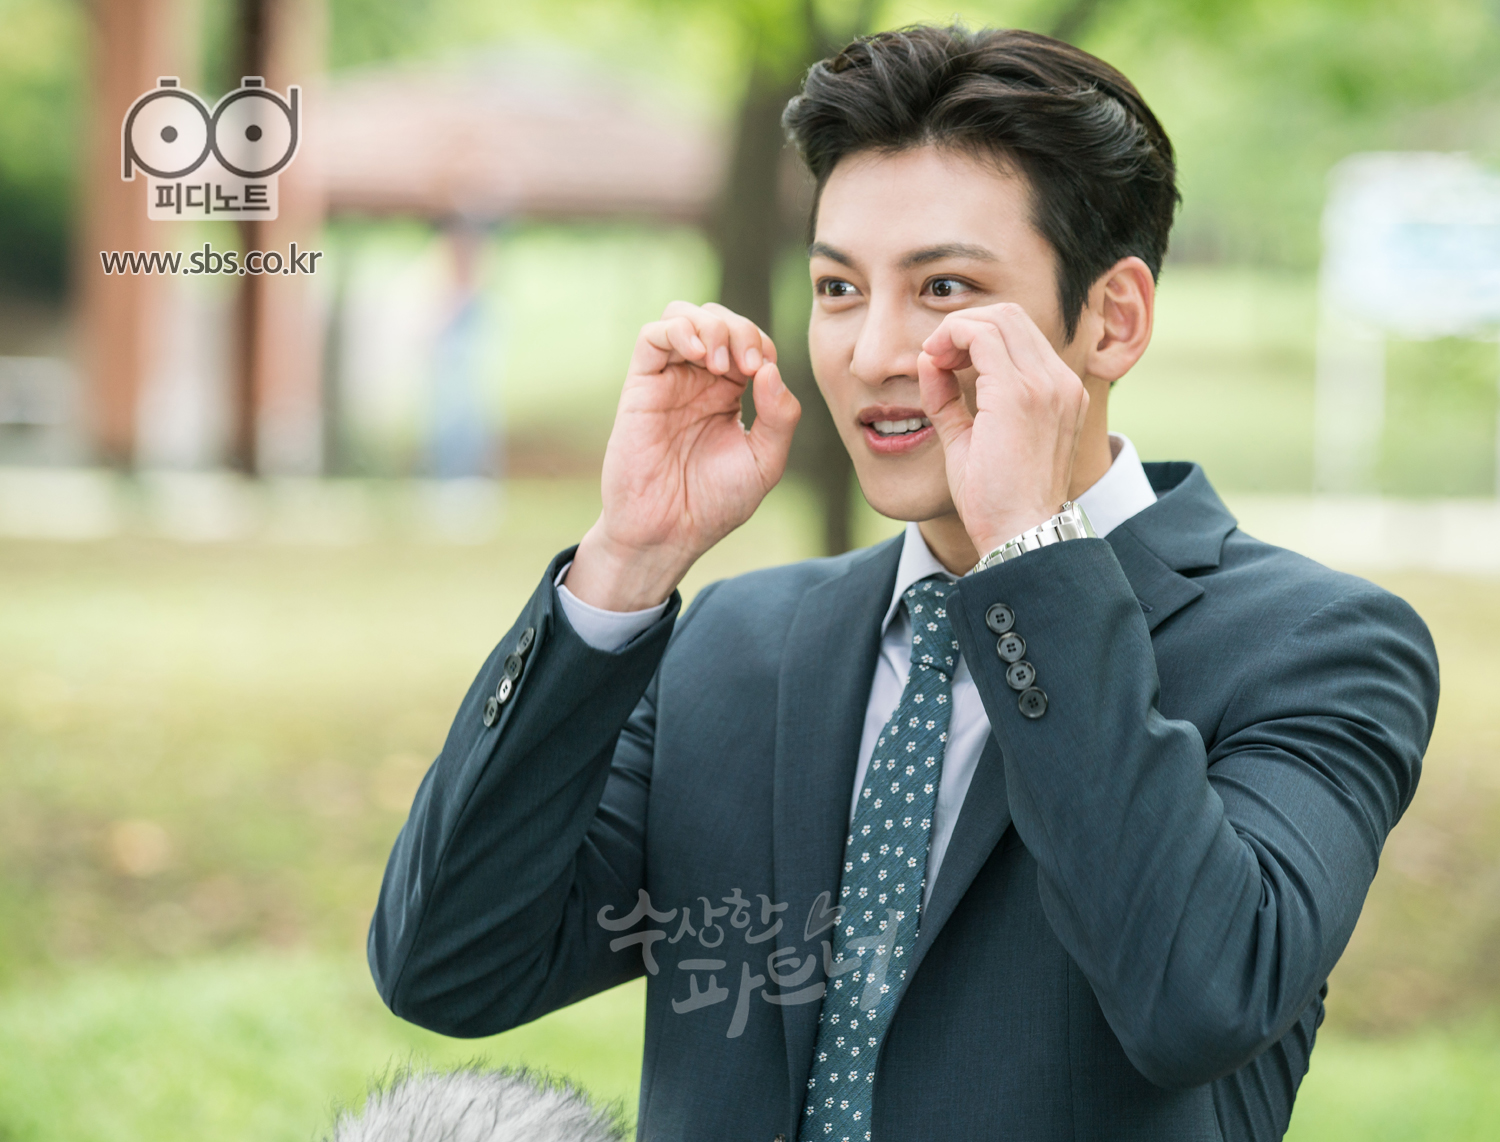 actress please melt me, ji changwook please melt me, actress ji changwook